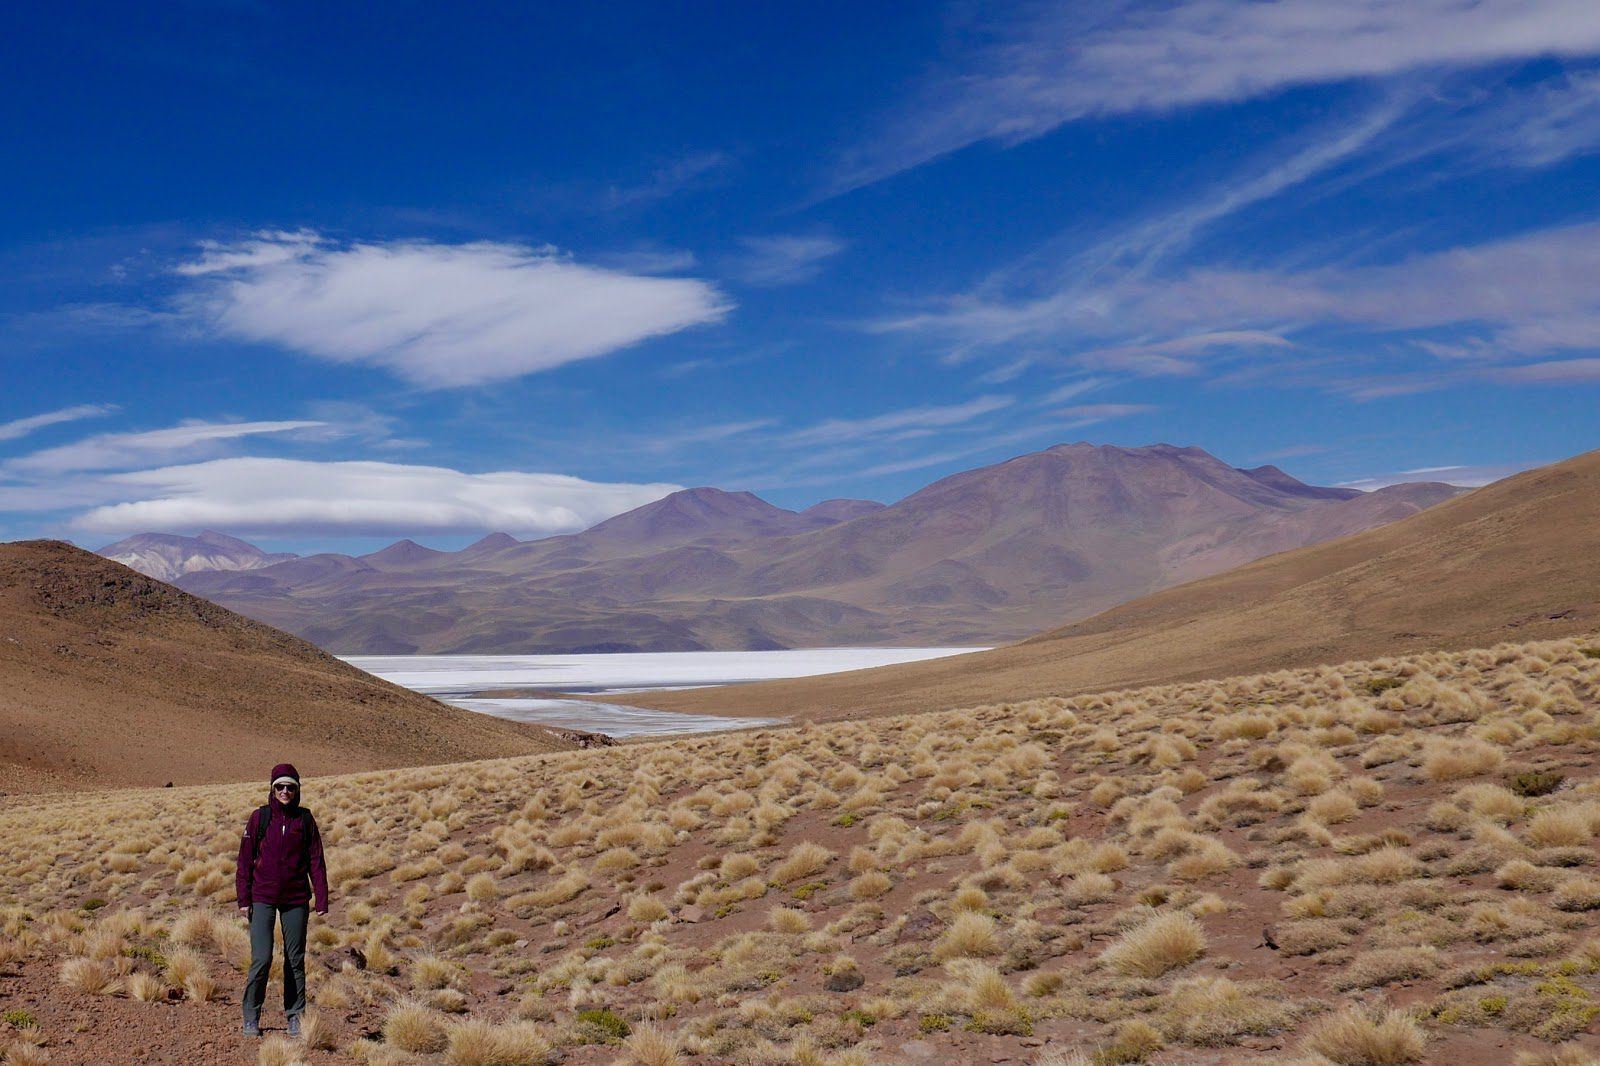 A woman in a purple jacket hiking rolling hills with salt pans in the background in the Atacama Desert